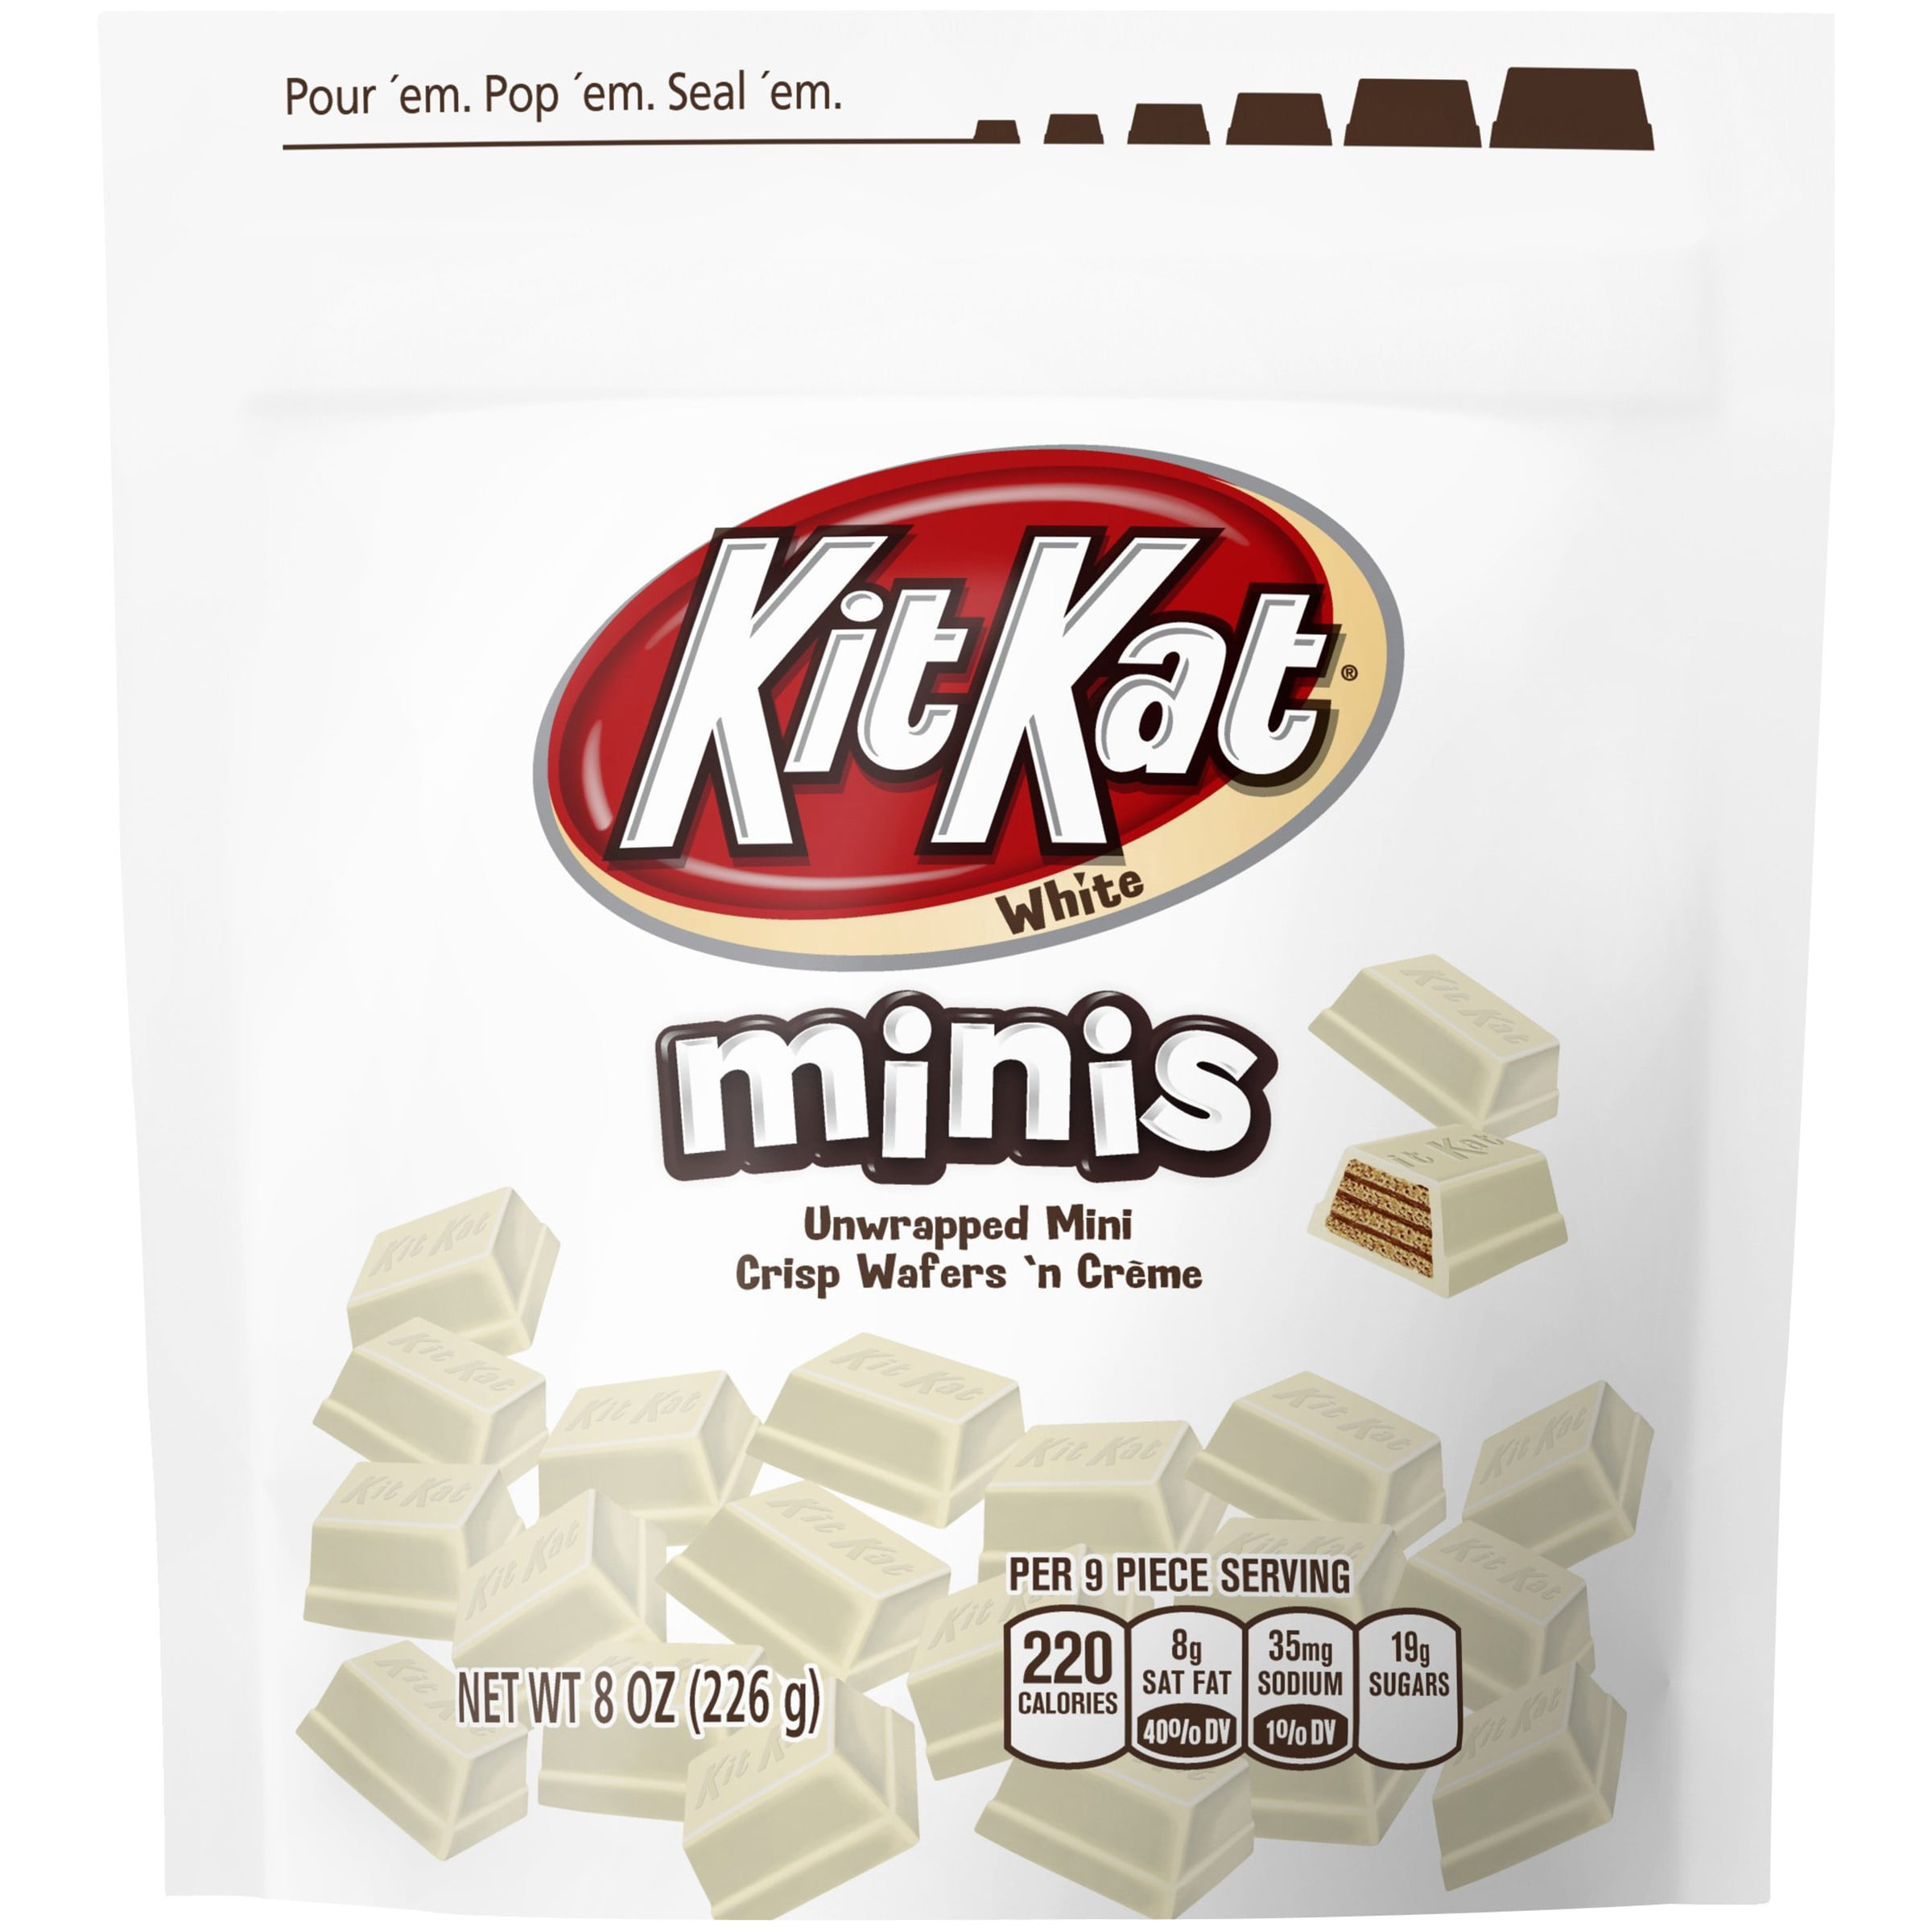 Kit Kat Minis White Chocolate Candy 8 oz. Bag by Hershey's